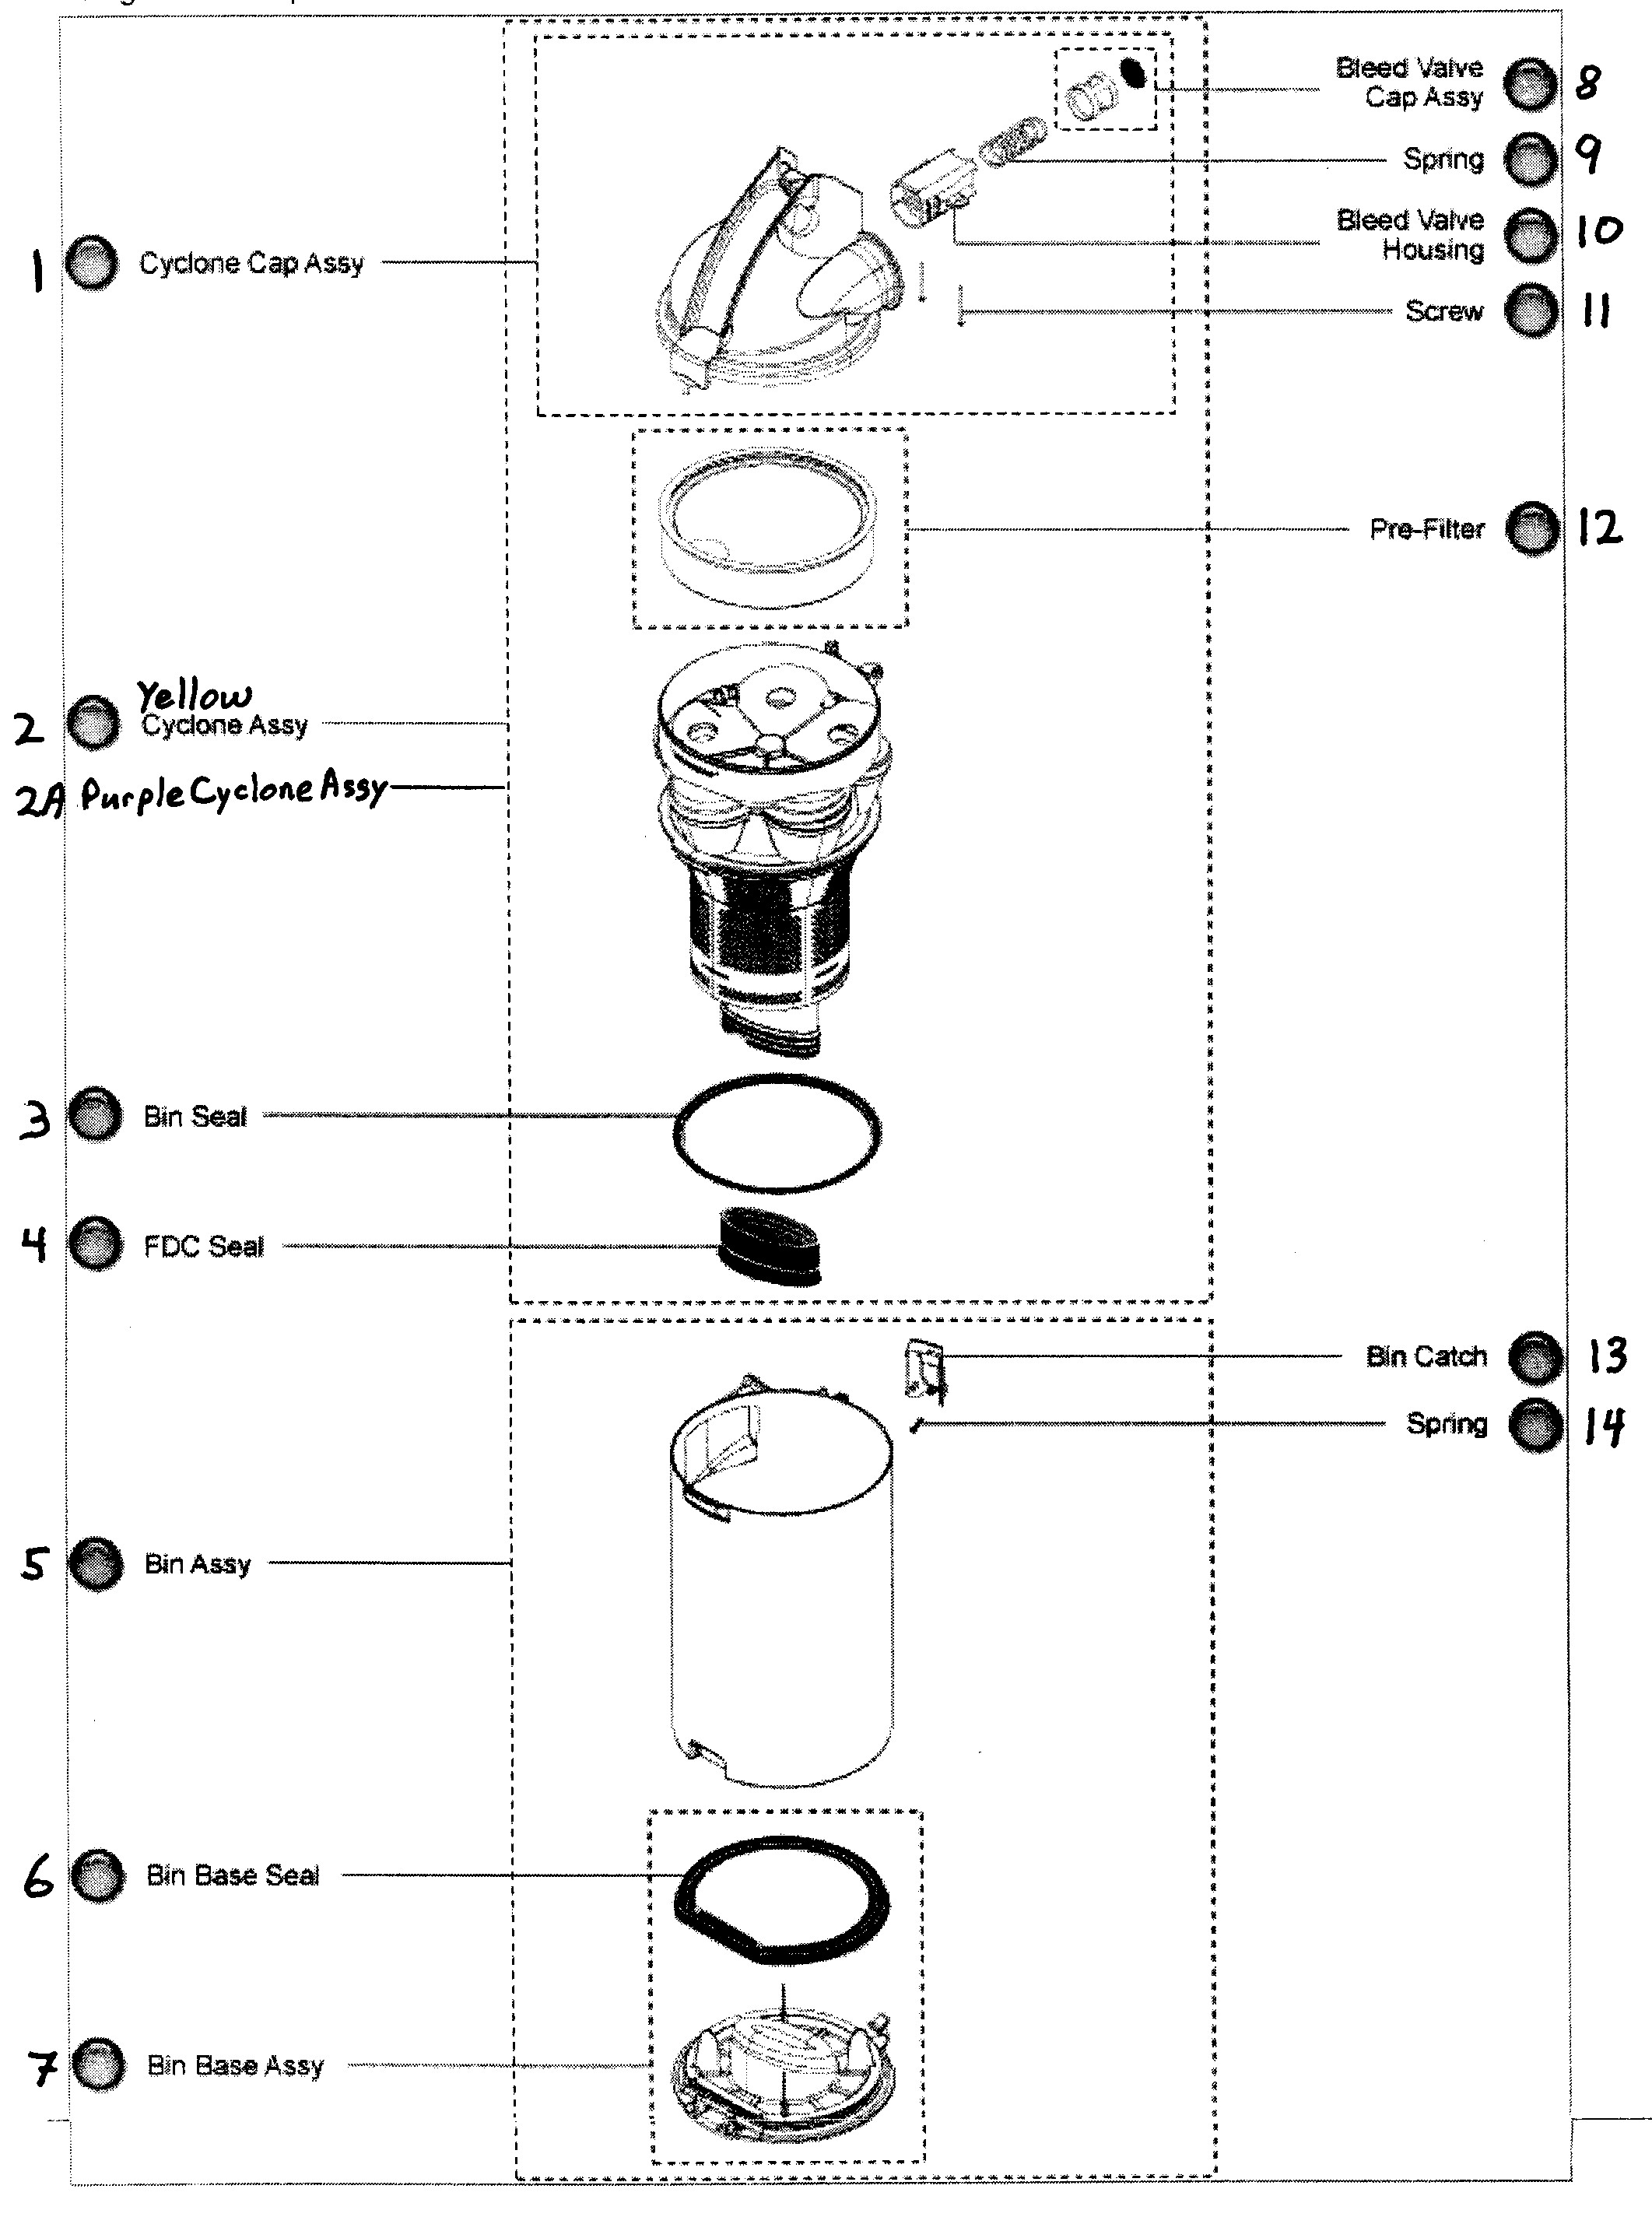 dyson dc25 parts diagram my wiring diagram